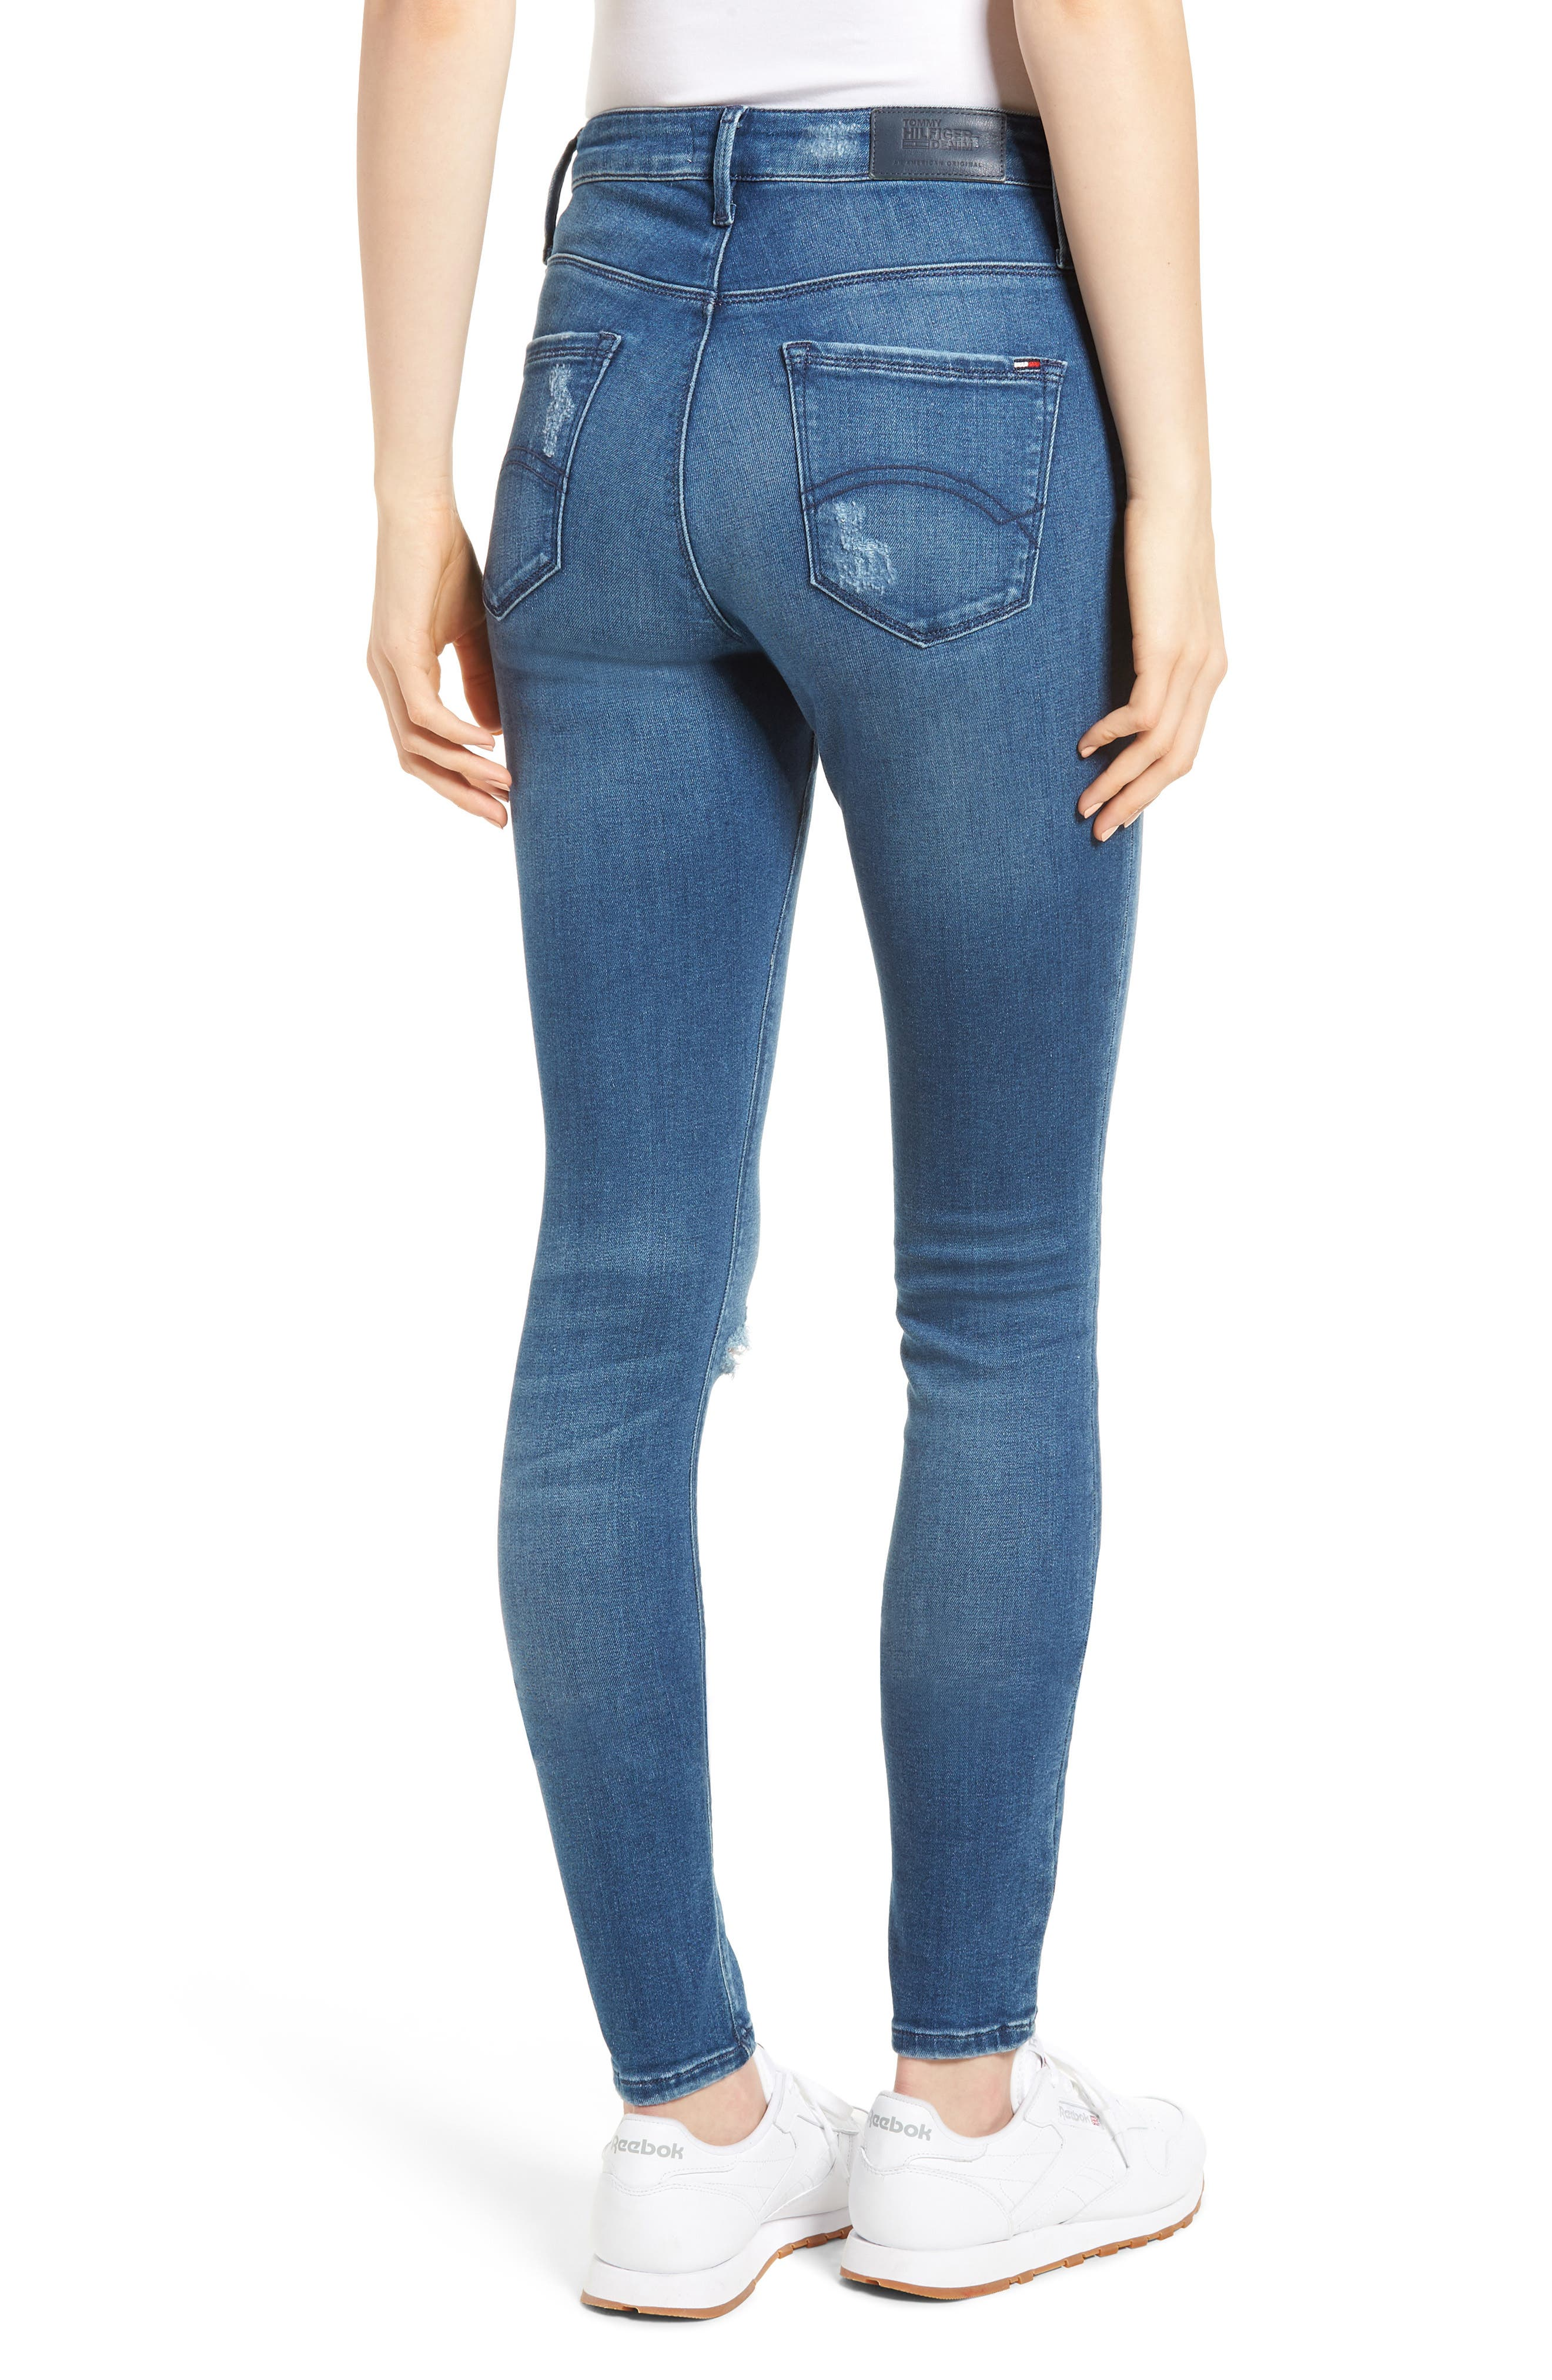 Santana Ripped Skinny Jeans,                             Alternate thumbnail 2, color,                             Fargo Blue Stretch Destructed